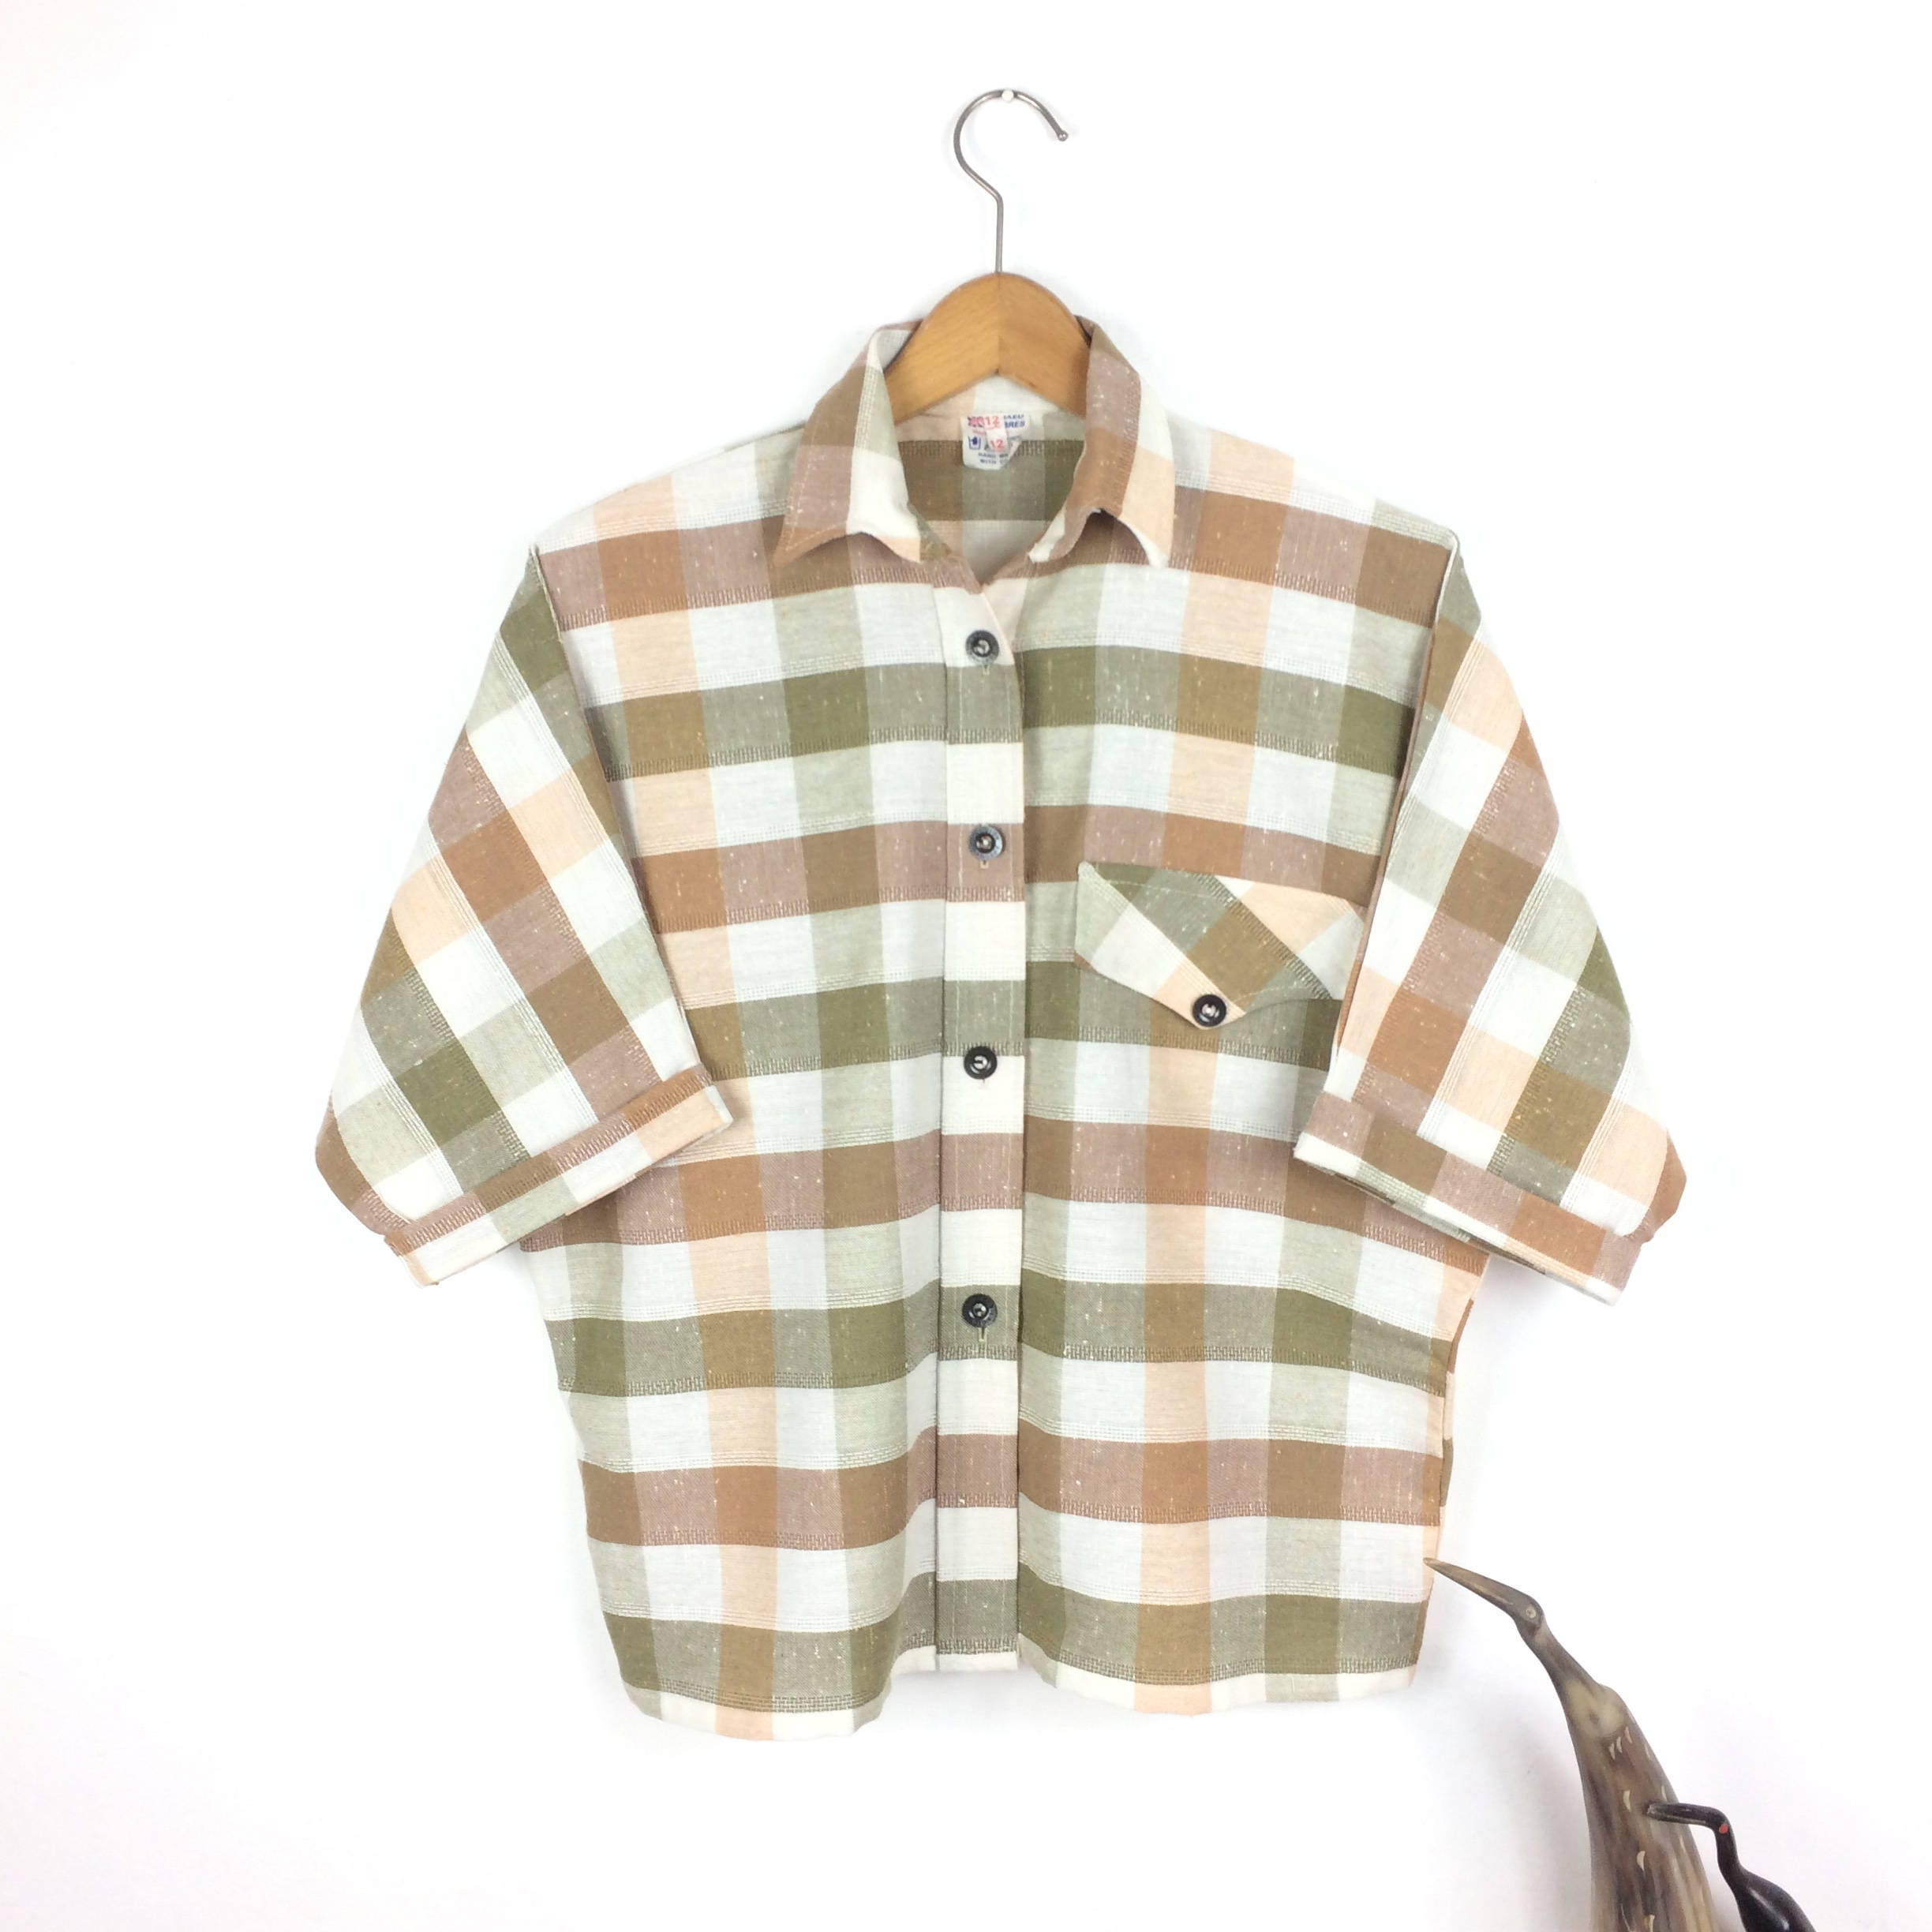 Plaid Blouse 70s Button Up Shirt Checkered Pattern Polo WIDE SLEEVE Boho 1970s Top Western Vintage Brown Beige Tunic Hipster Oversize Medium